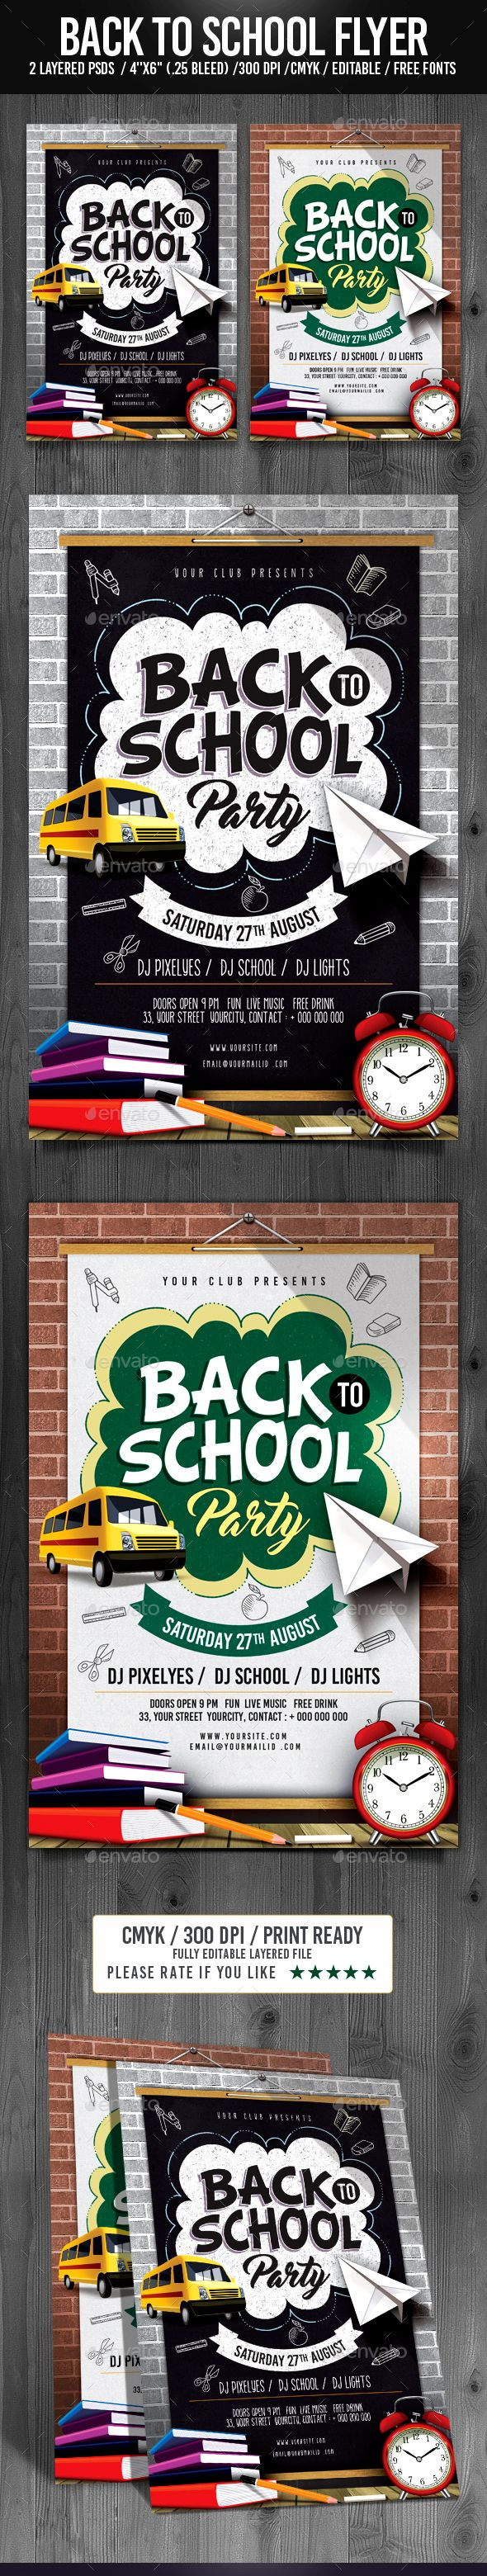 17 best images about child care branding logo back to school flyer